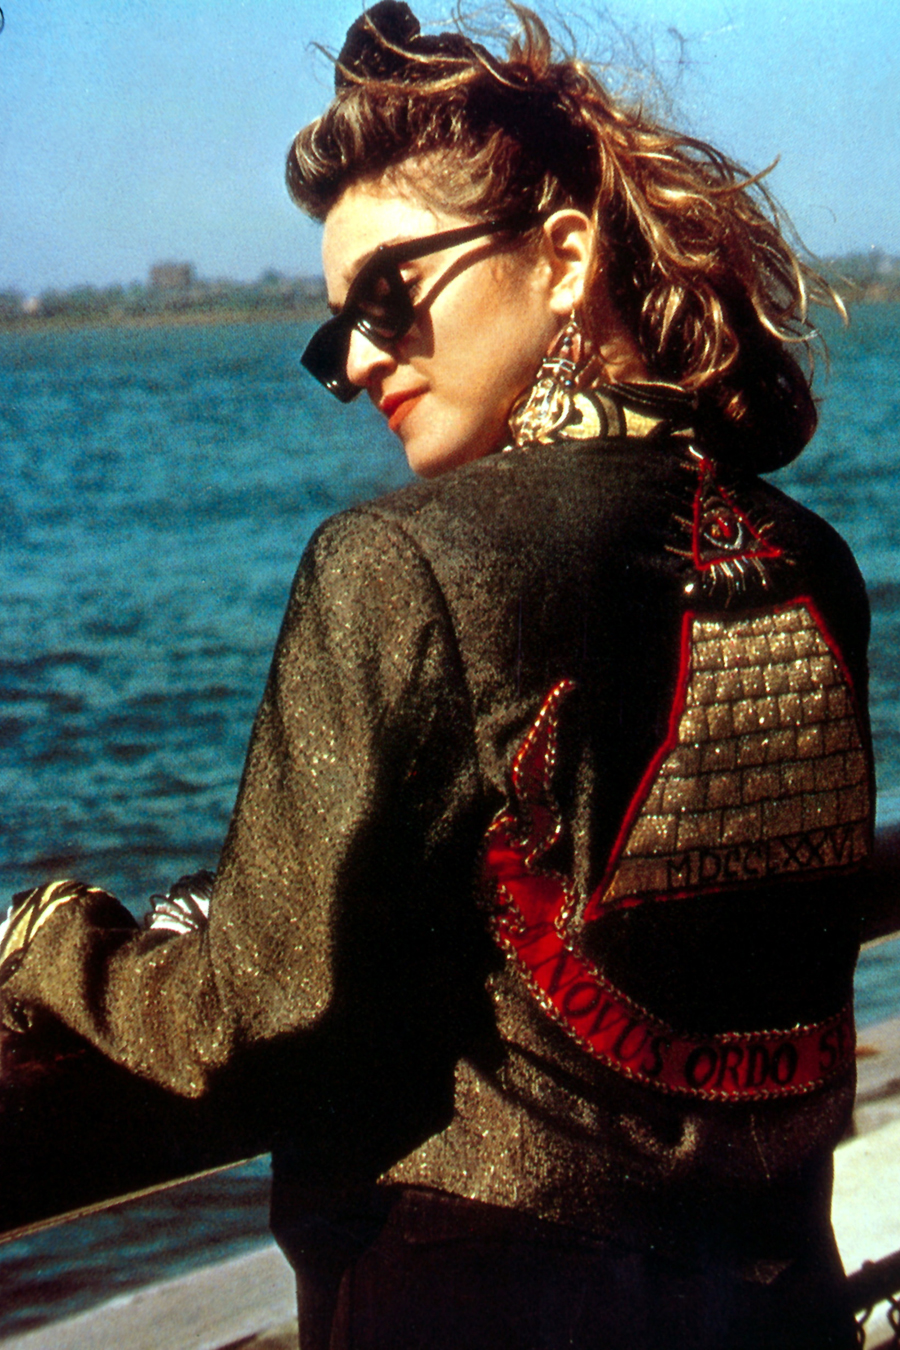 <p>The Leather Mini: Madonna</p>